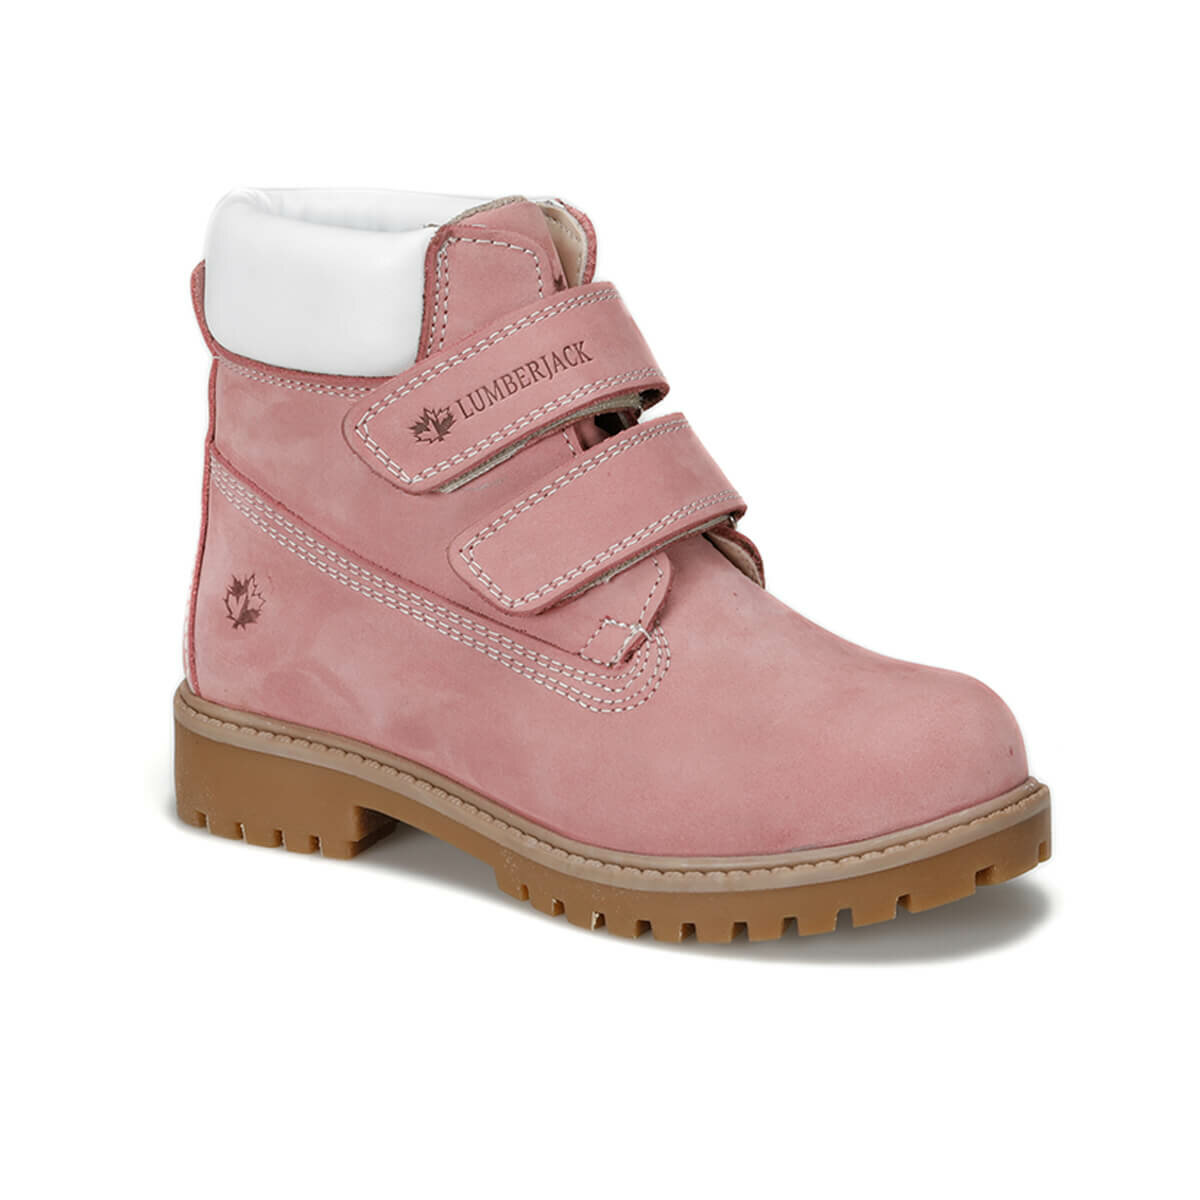 FLO RIVER 9PR Pink Female Child Boots LUMBERJACK